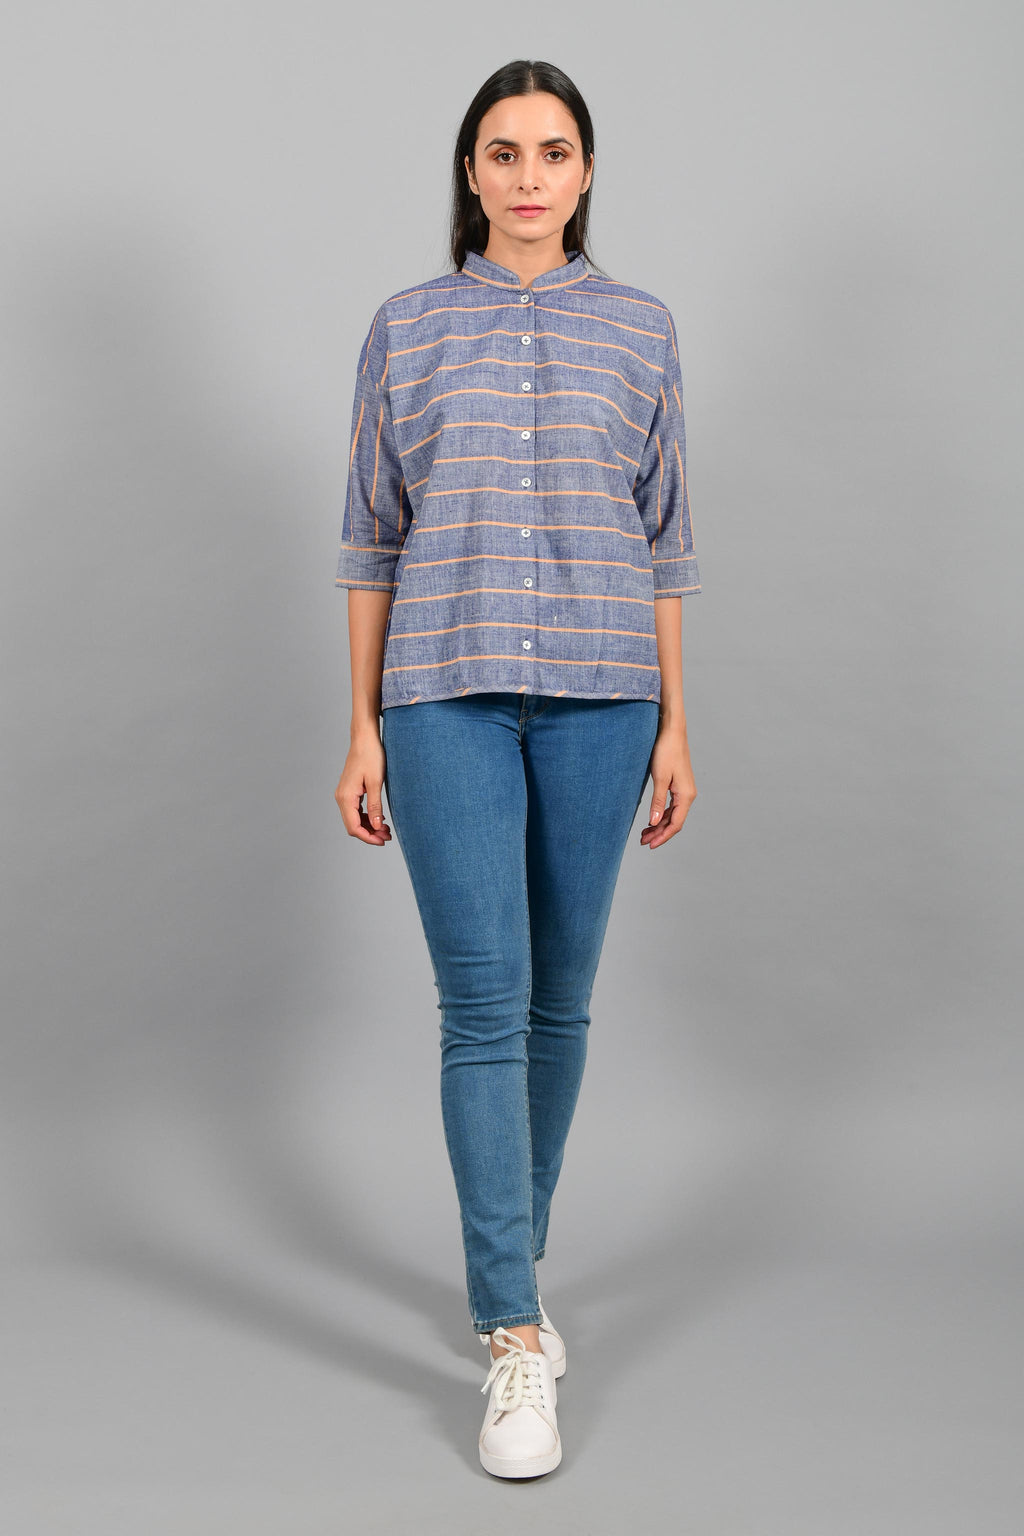 Front pose of an Indian female womenswear fashion model in a blue chambray with orange stripes handspun and handwoven khadi cotton free size top by Cotton Rack.